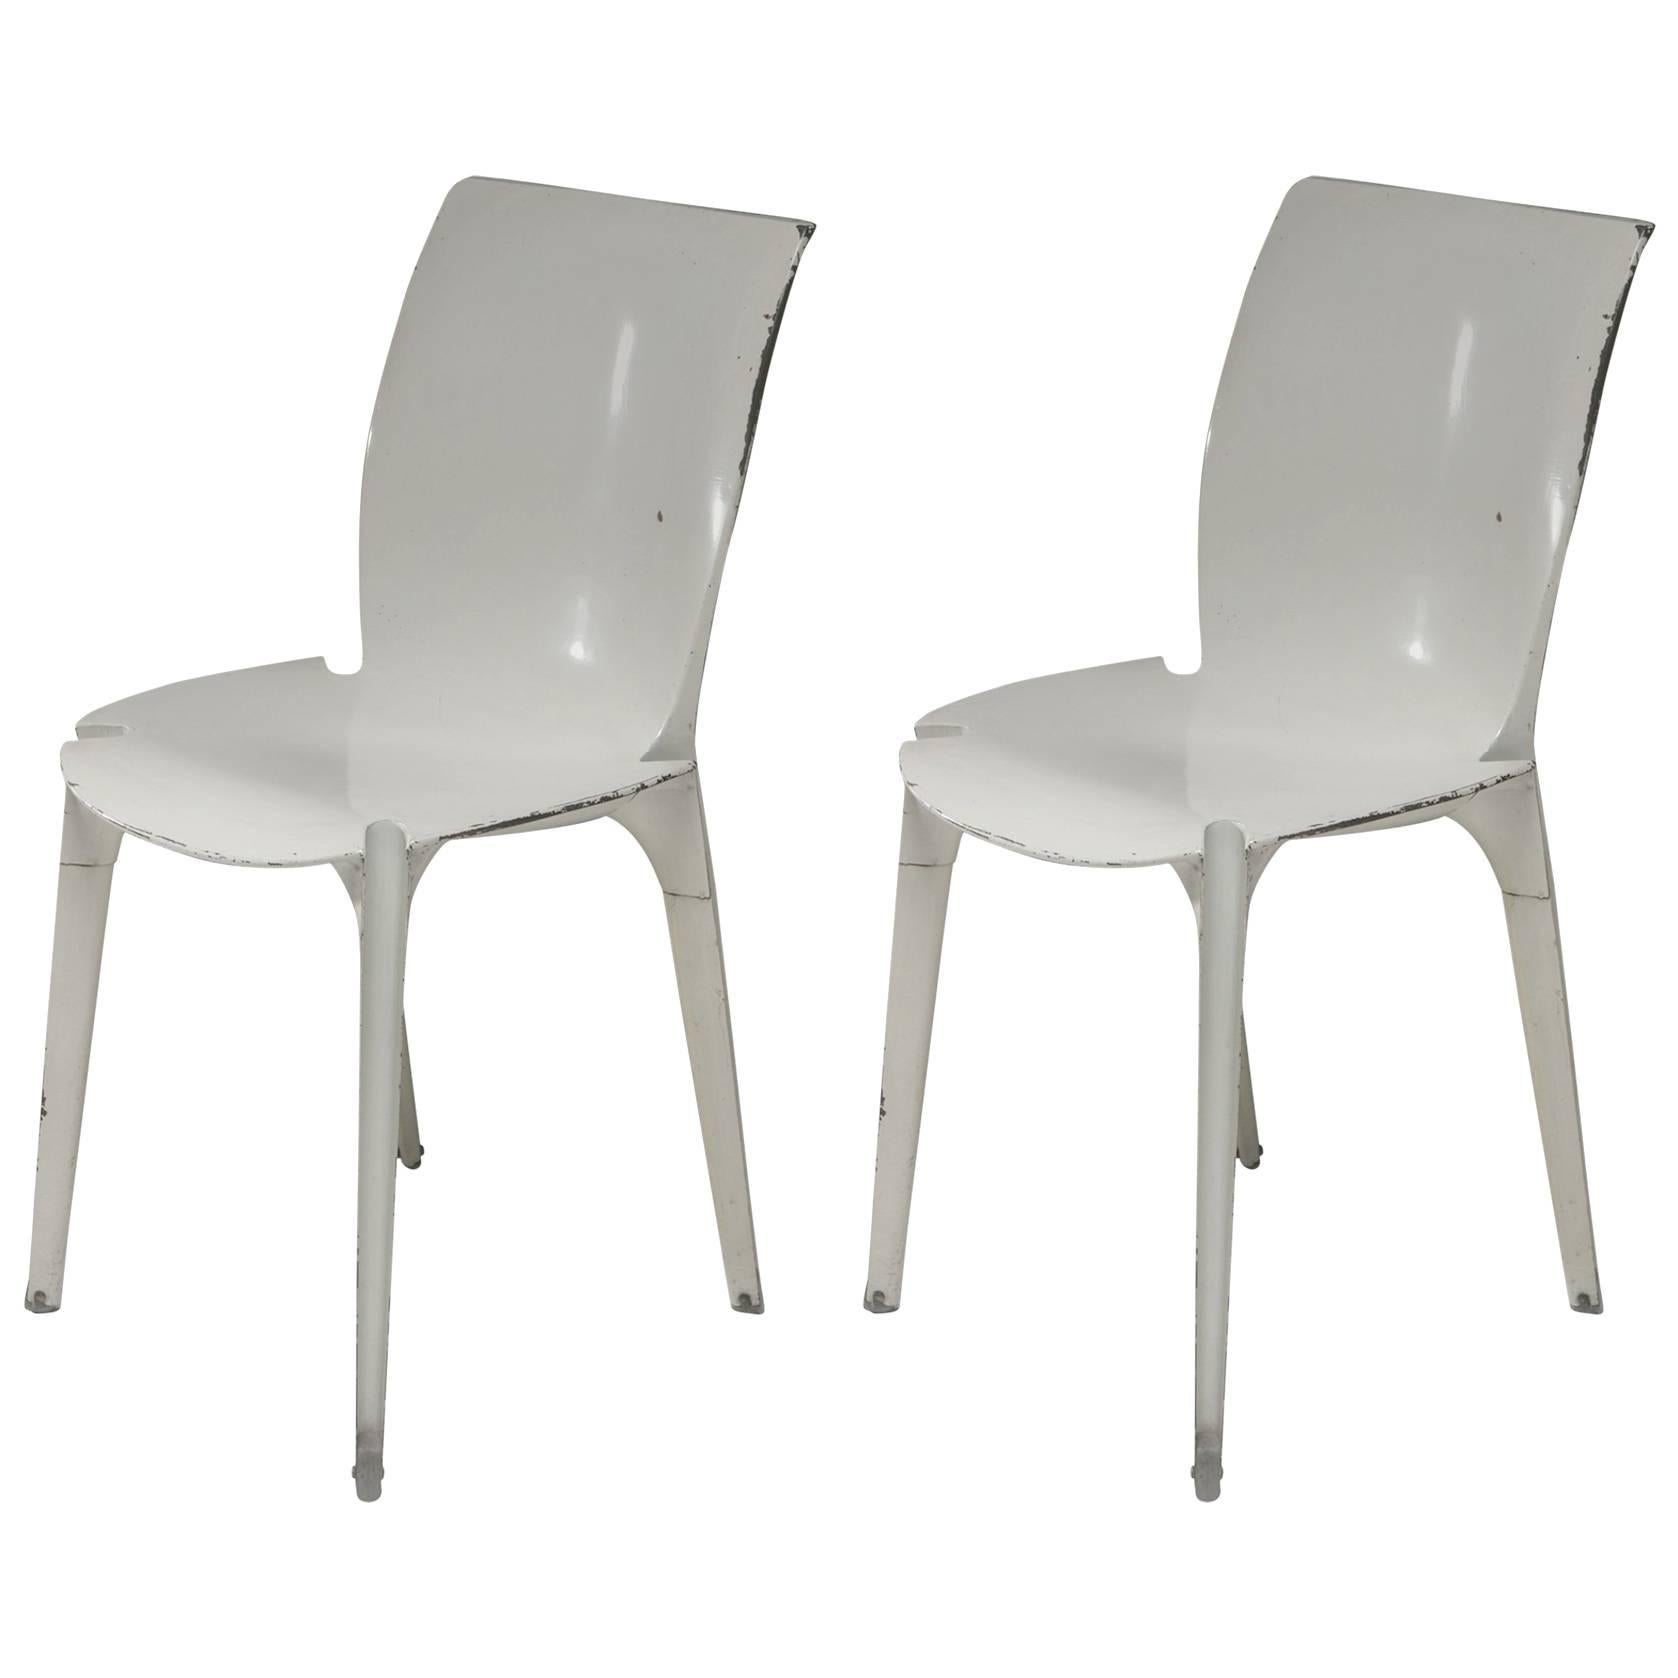 chair design research round cushions pair of lambda chairs by richard sapper and marco zanuso for gavina